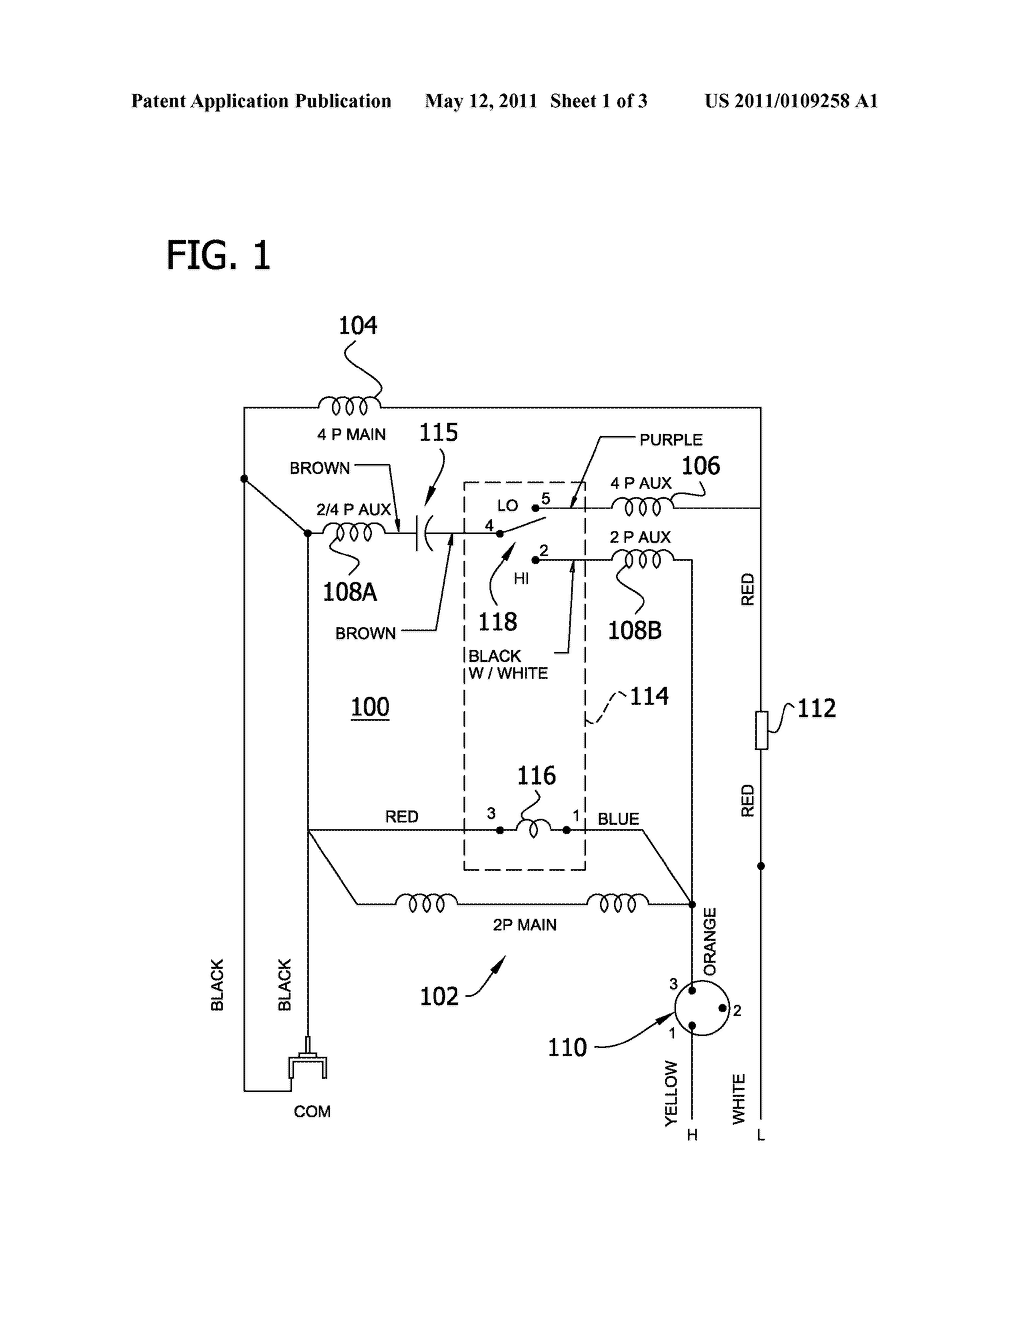 hight resolution of 2 speed 2 4 pole psc psc motor with independent main windings and shared auxiliary winding diagram schematic and image 02